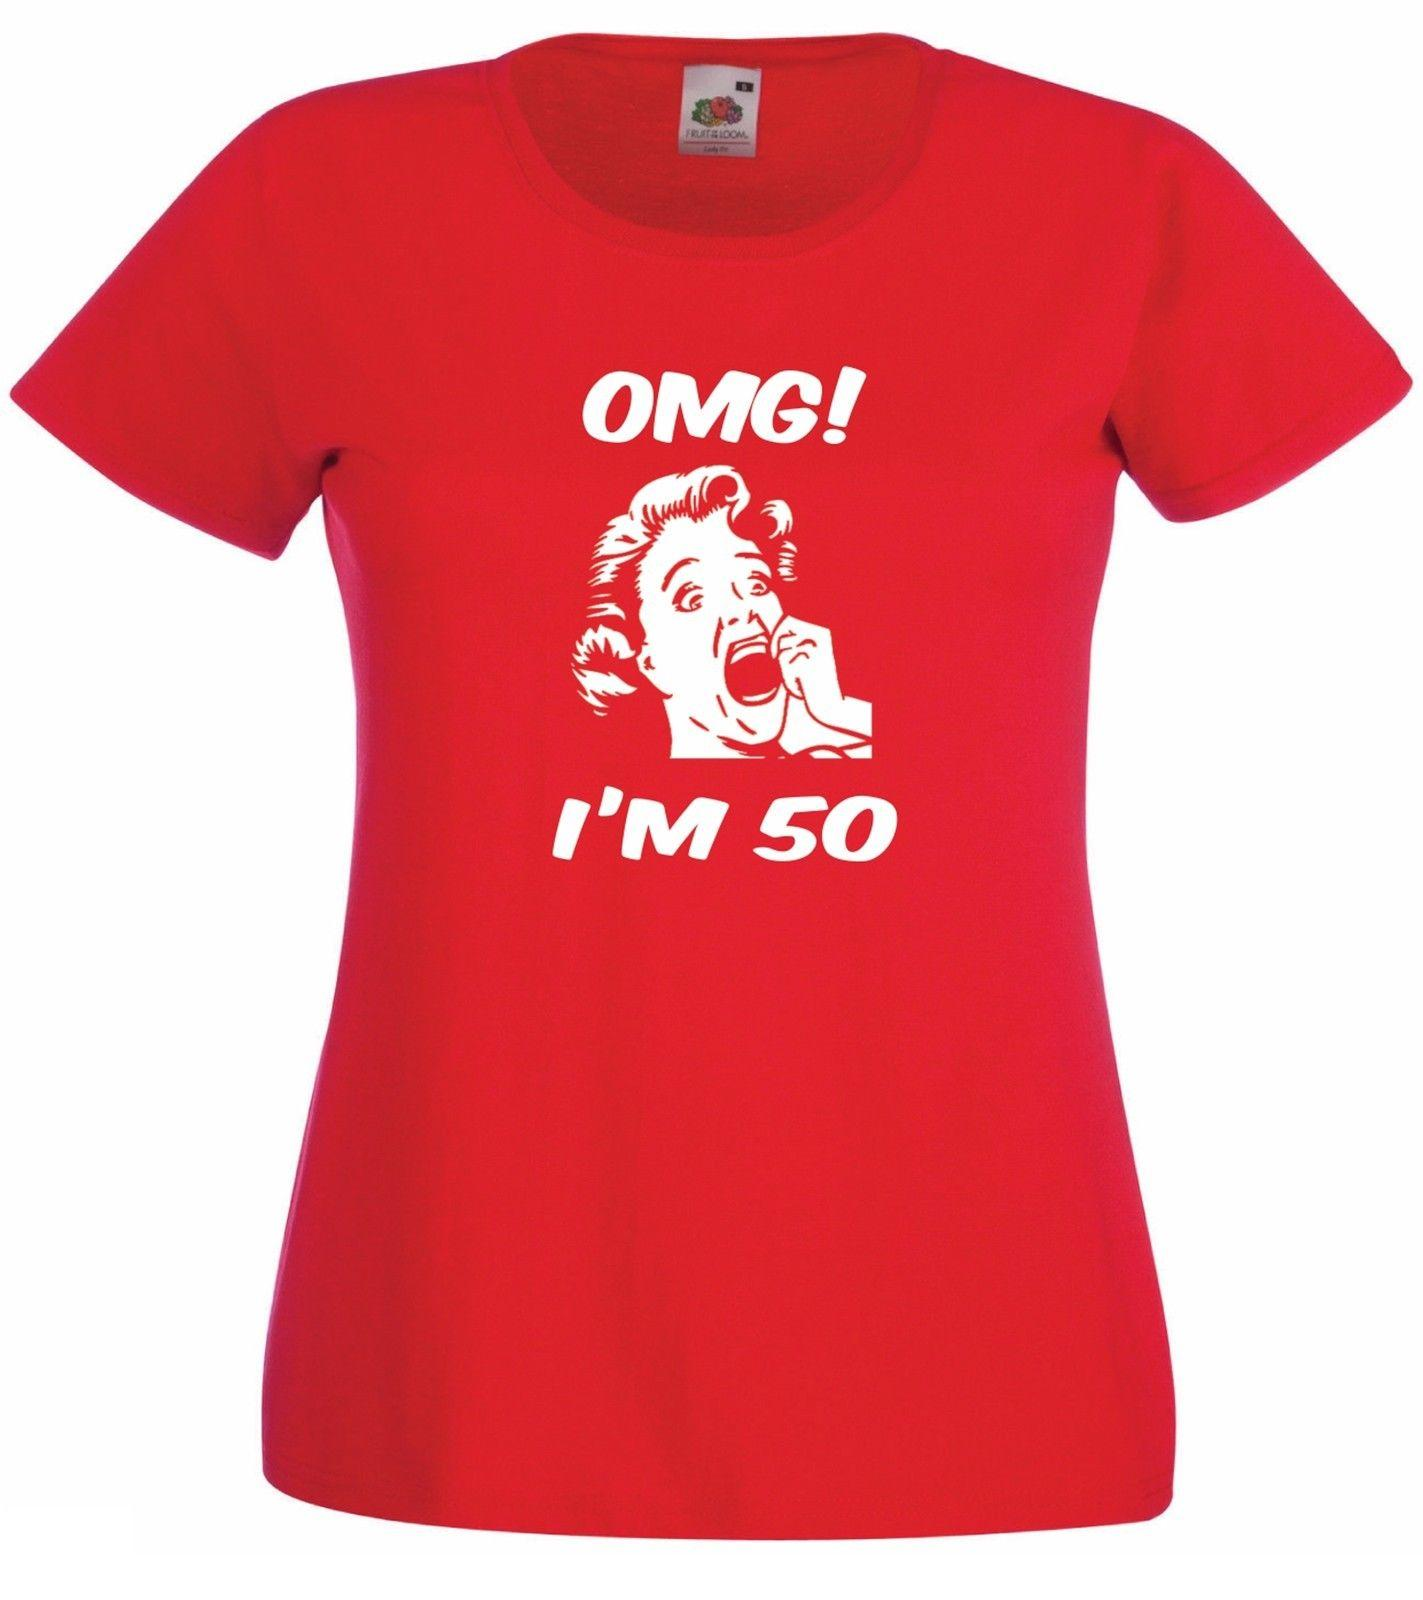 OH MY GOD IM 50 Funny Xmas 50TH Birthday Gift Mens Womens NEW TEE TOP T SHIRT Casual Tee Online Shirt Printing On Shirts From Fatcuckoo